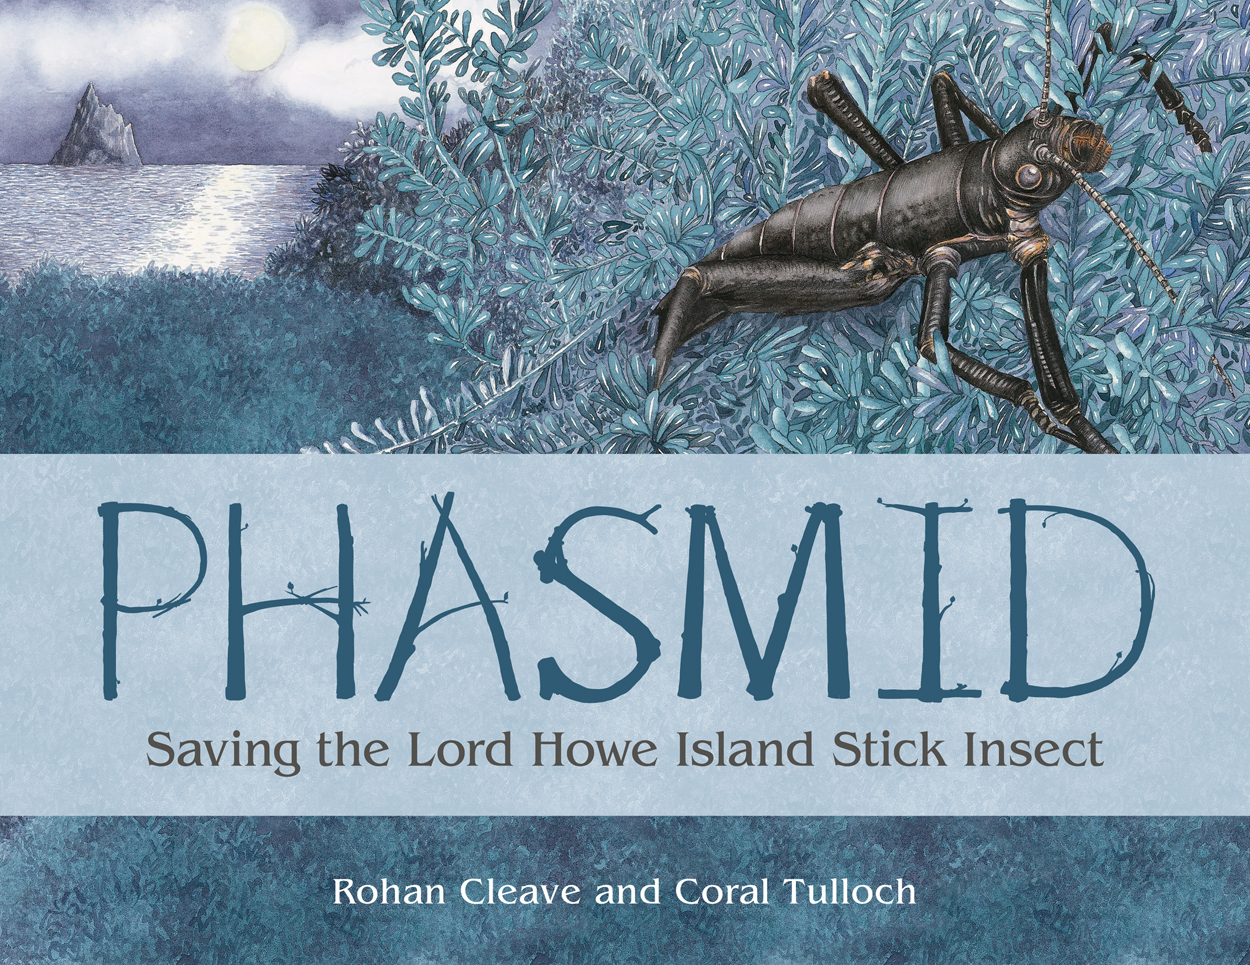 The striking front cover image produced by Coral Tulloch.  Image courtesy of CSIRO Publishing.